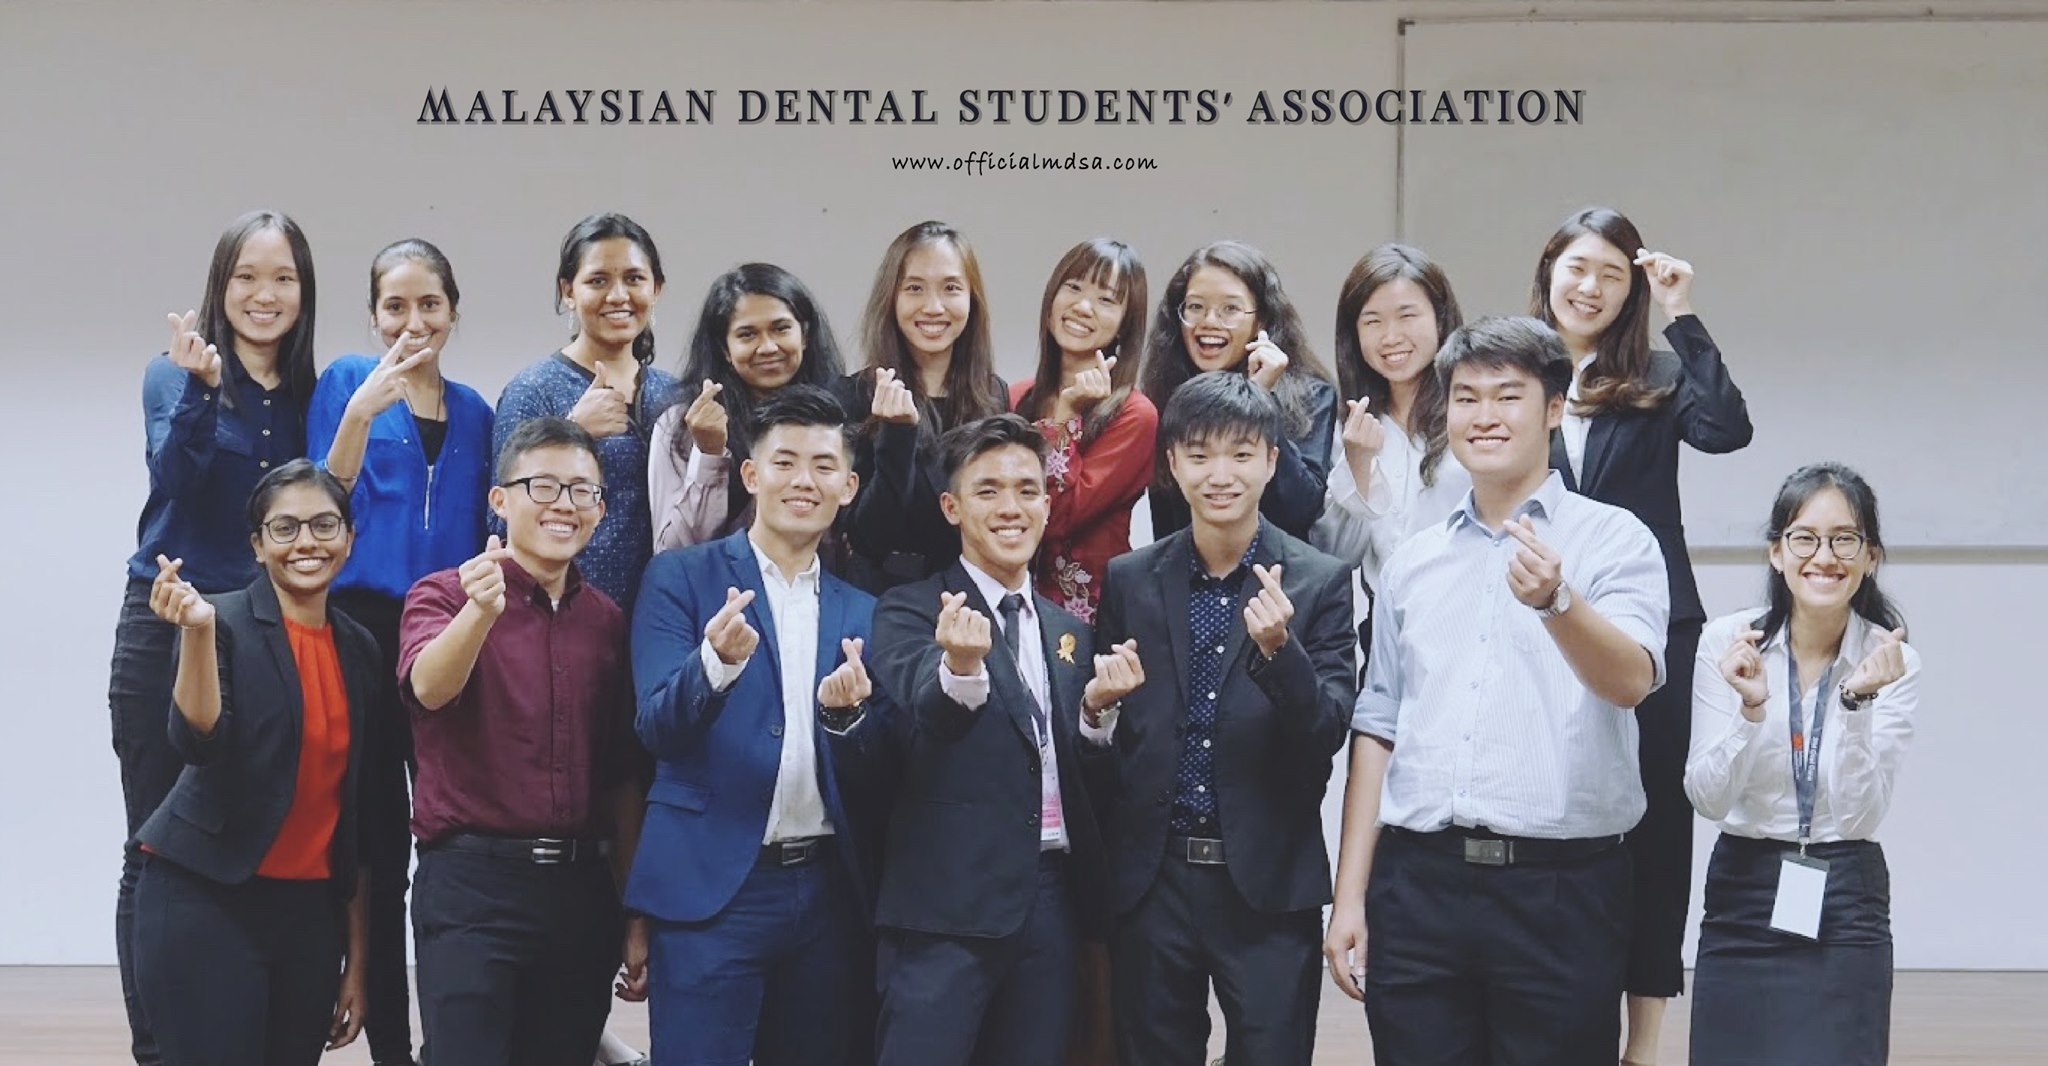 IMU dentistry student, Jacklyn Ng Zhi Ling shares her journey as MDSA's student leader.